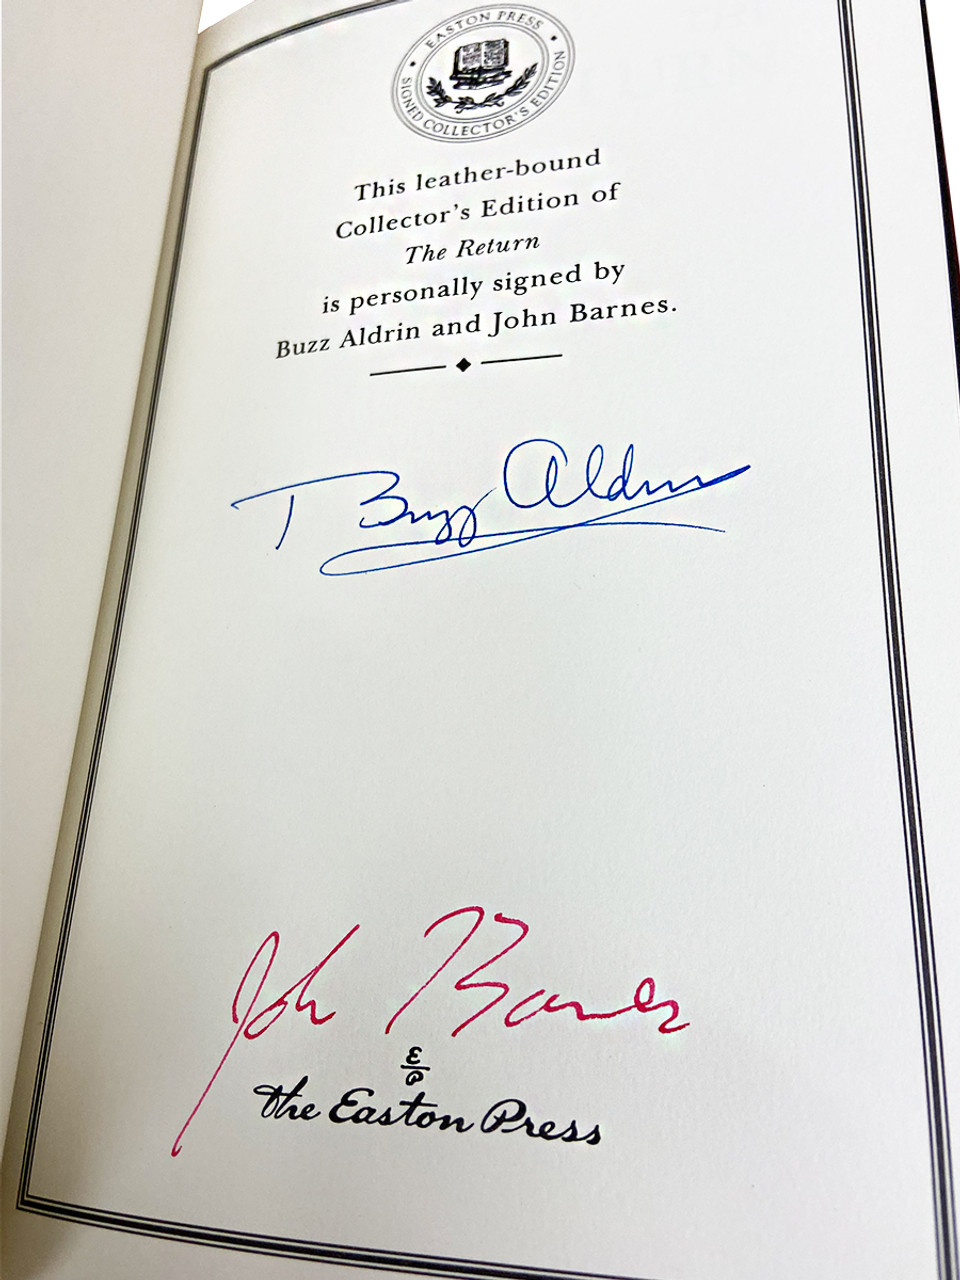 """Buzz Aldrin and John Barnes """"The Return"""" Signed Limited Edition, Leather Bound Collector's Edition w/COA"""